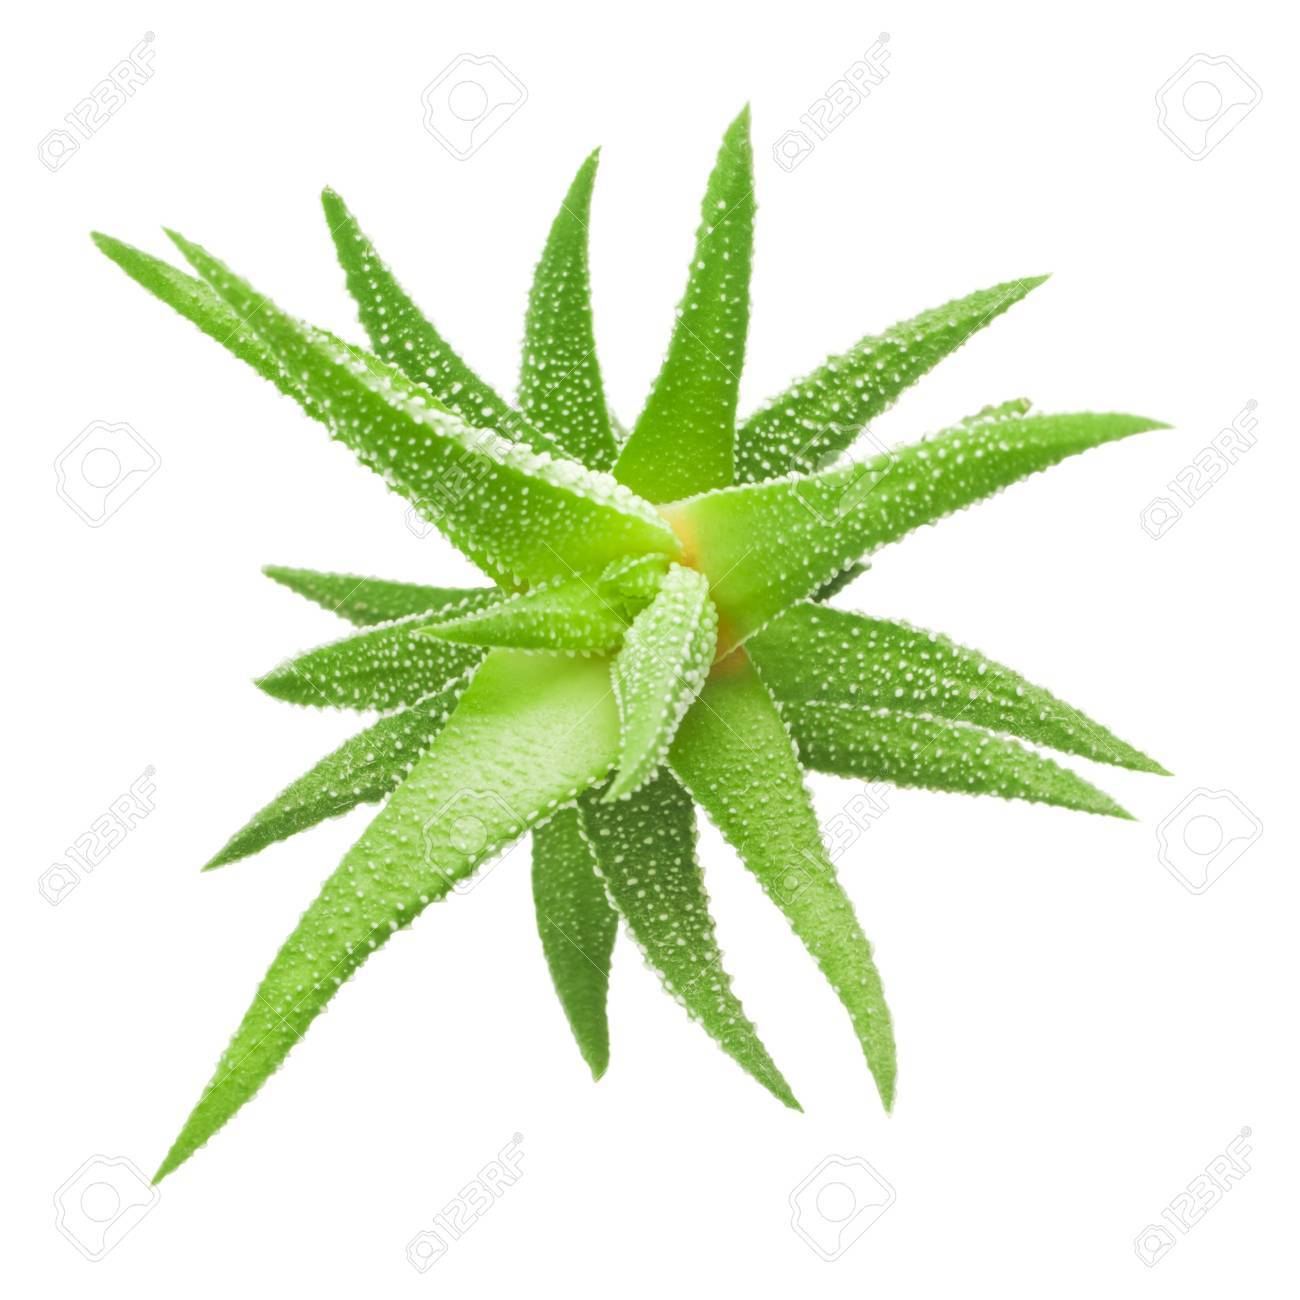 Green leaves of aloe plant close up Stock Photo - 19312696